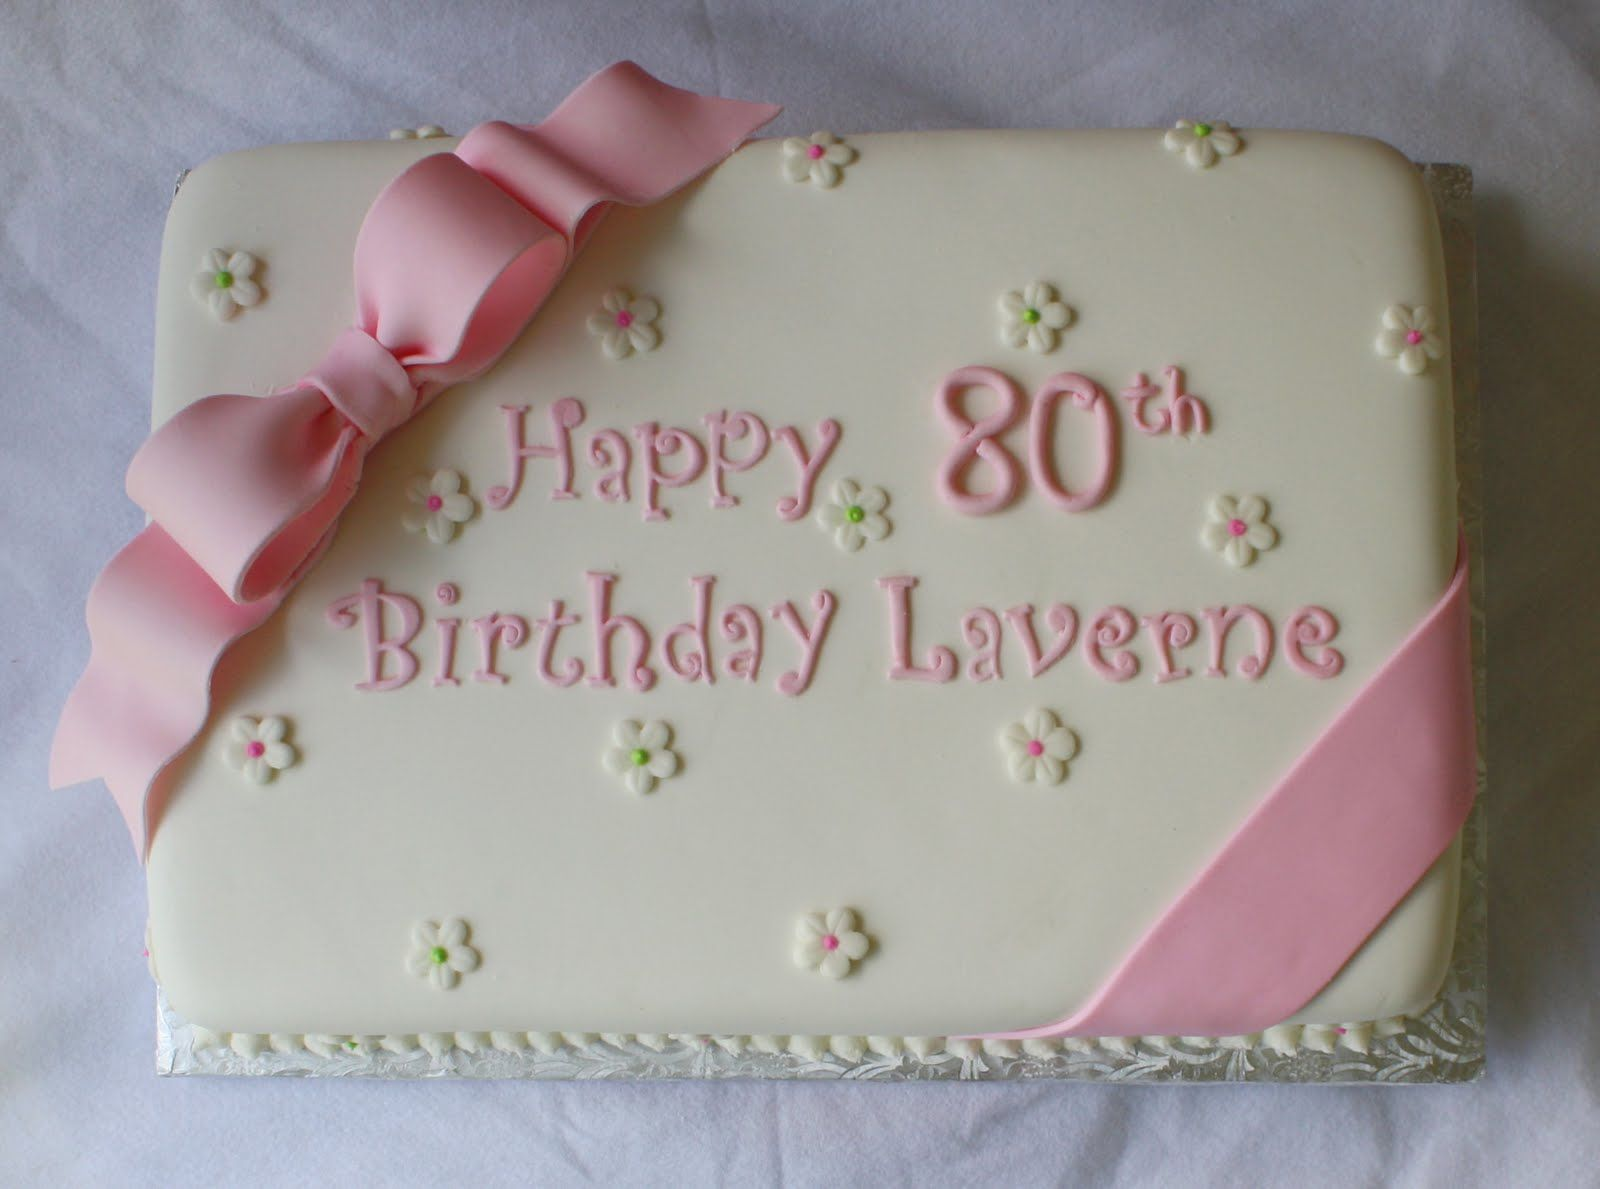 Pink & Green Sheet Cakes for 1st and 80th Birthdays | cake ...